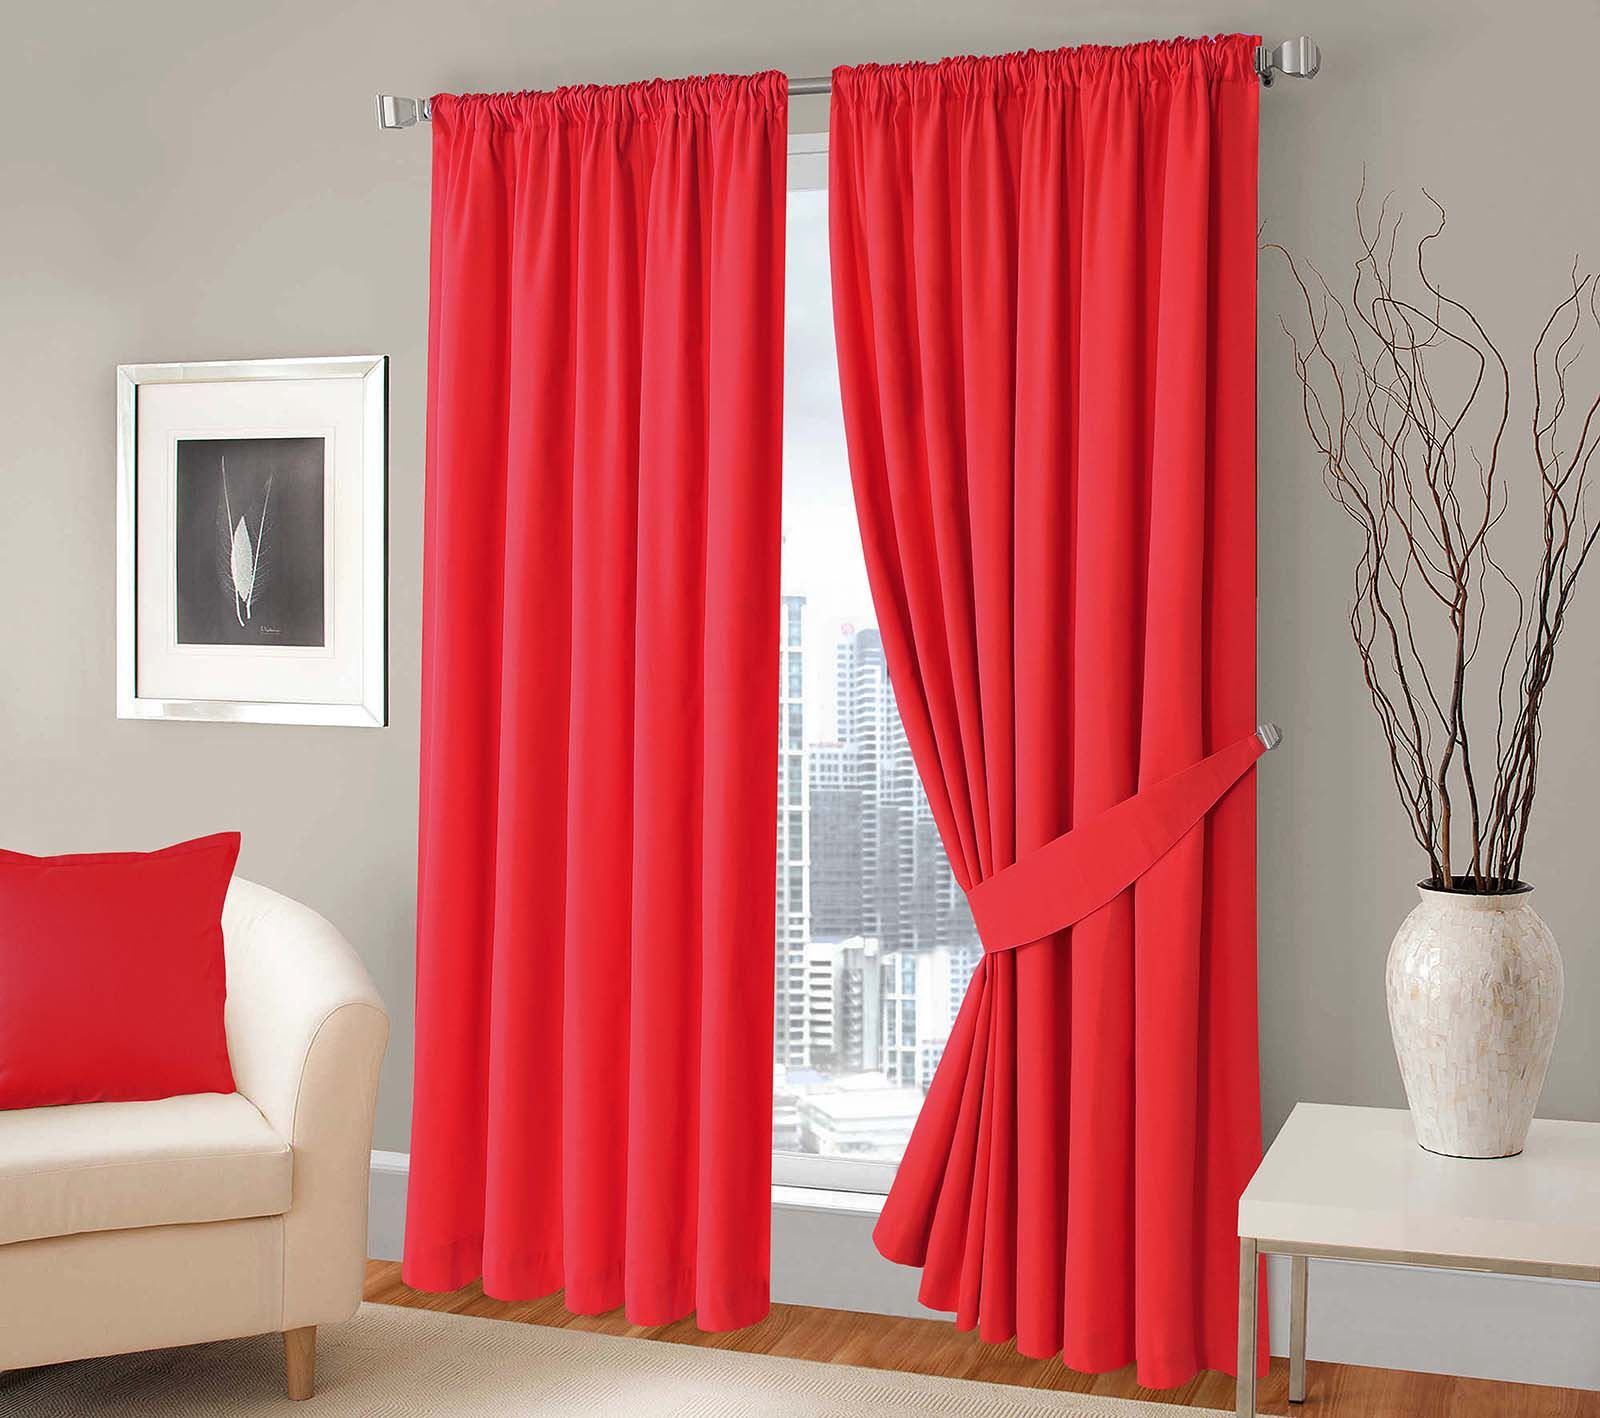 100 Cotton Panama Twill Curtains Fully Lined Ready